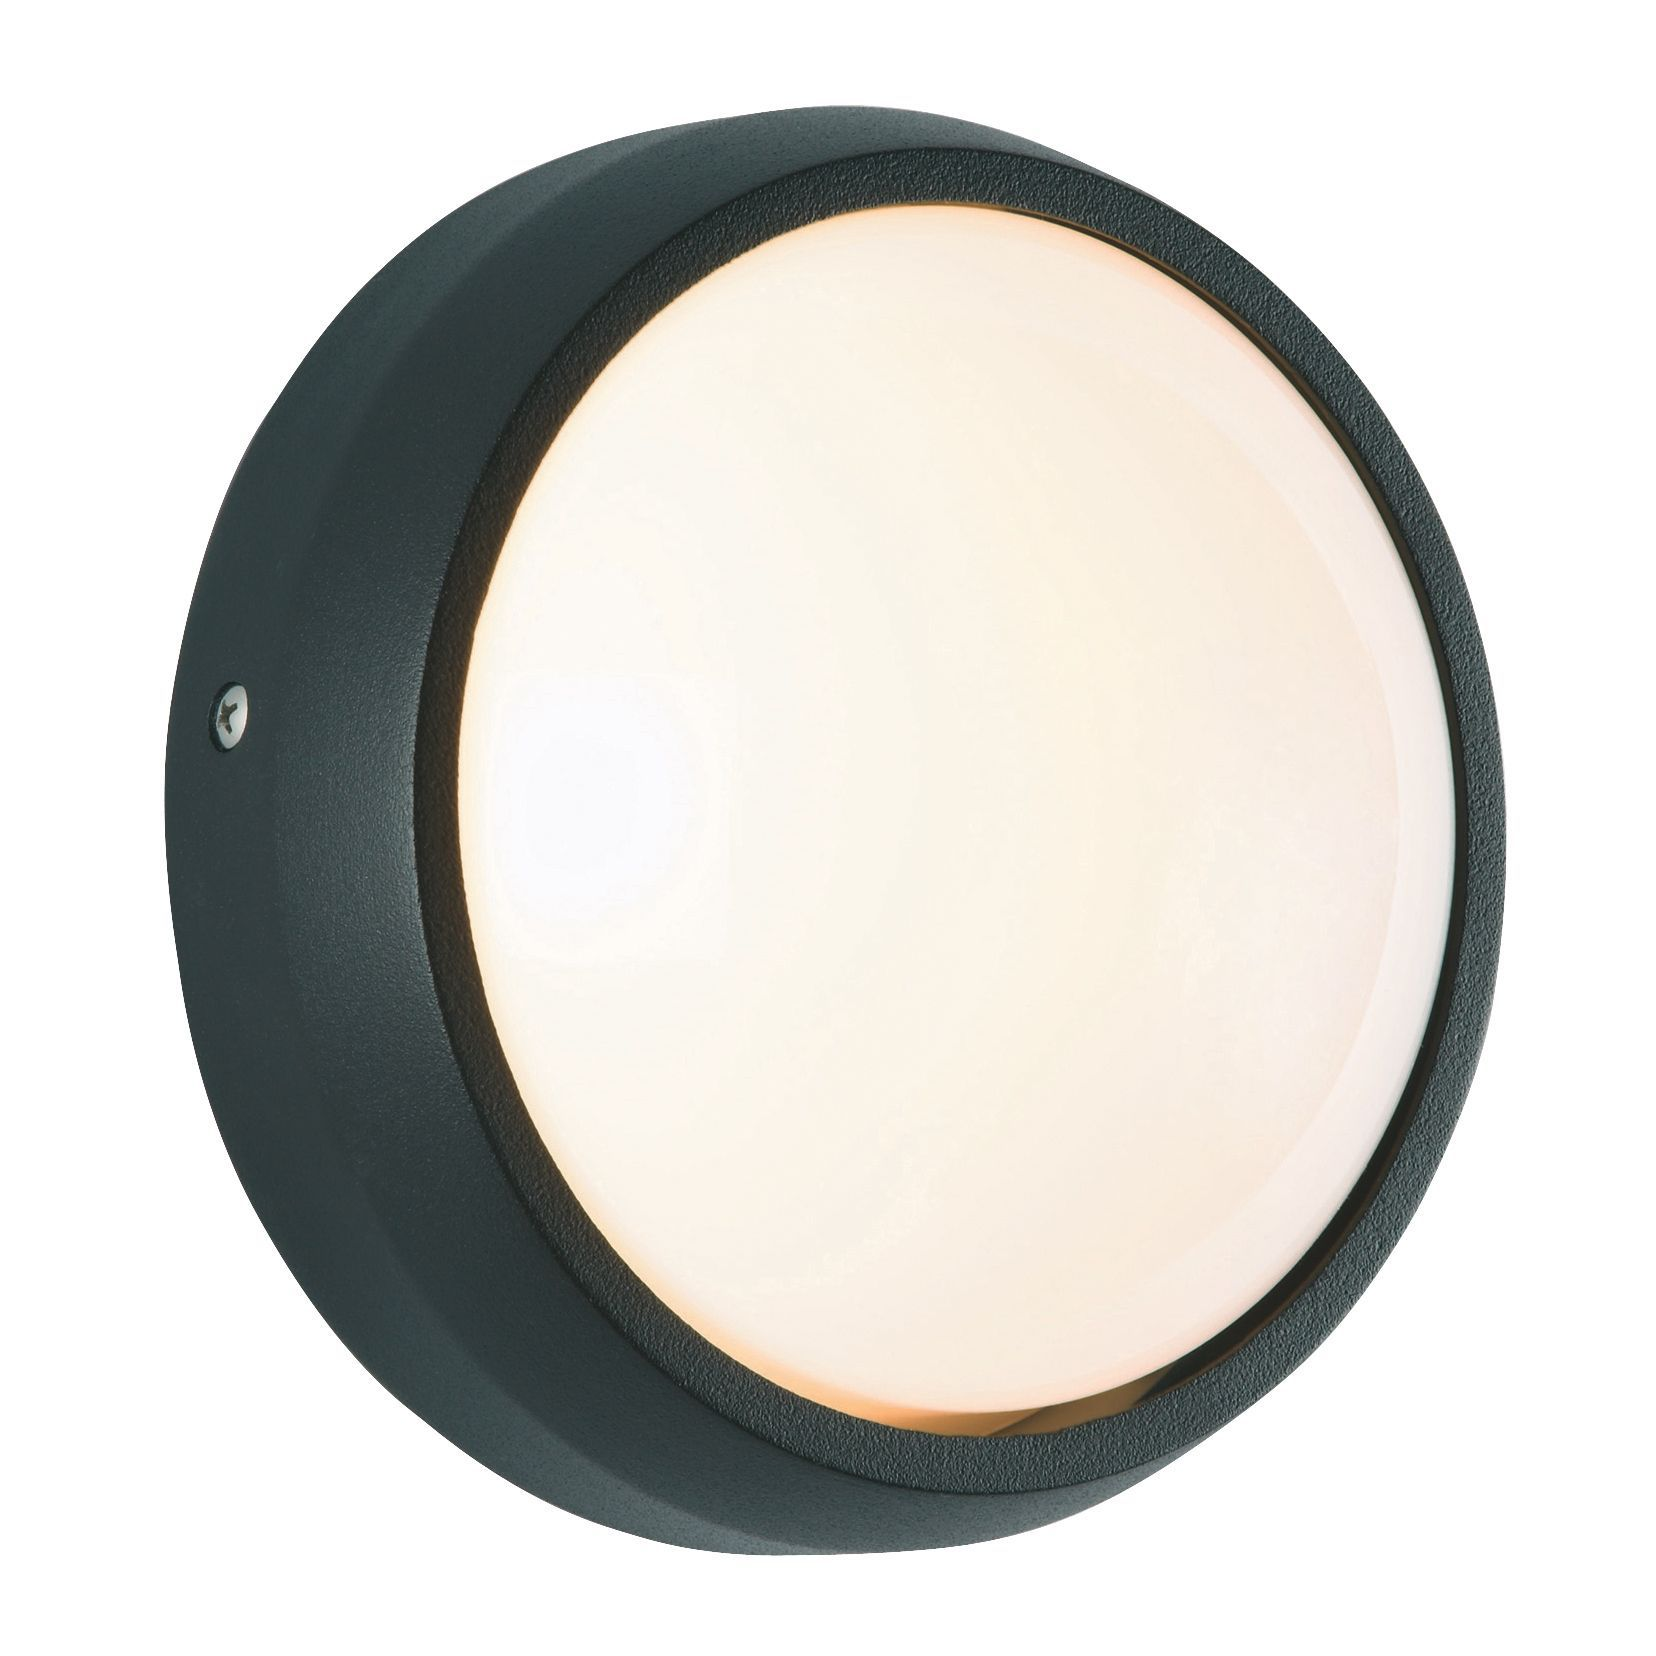 Gino Black Mains Powered External Bulkhead Wall Light